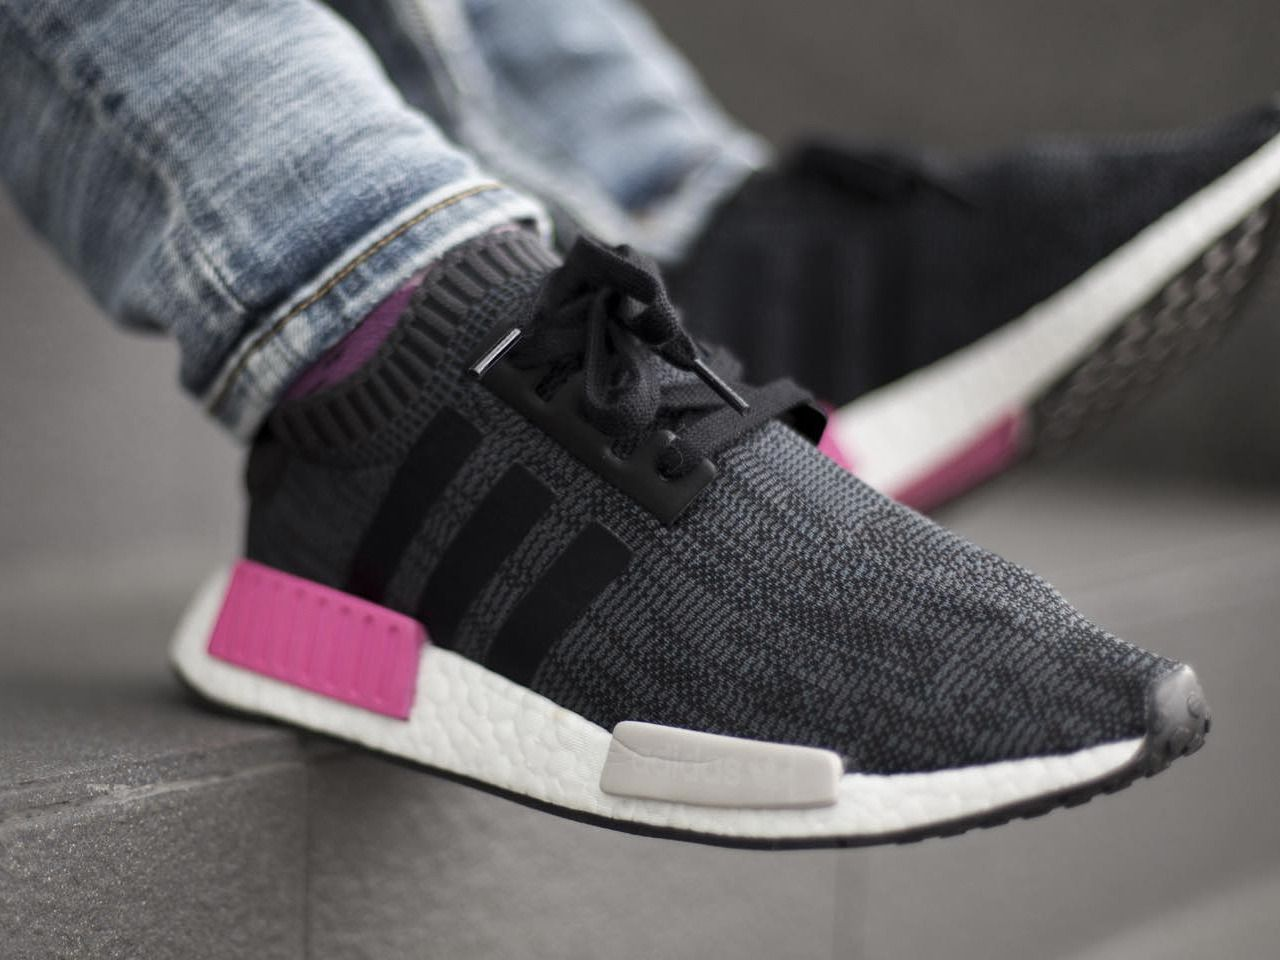 7d62fc579687e Adidas NMD R1 Primeknit - Black Shock Pink - 2017 (by Marcus Tan) Shoe  Trees by Sole Trees make customizing sneakers so much easier  ShoeTrees   ShoeTree   ...